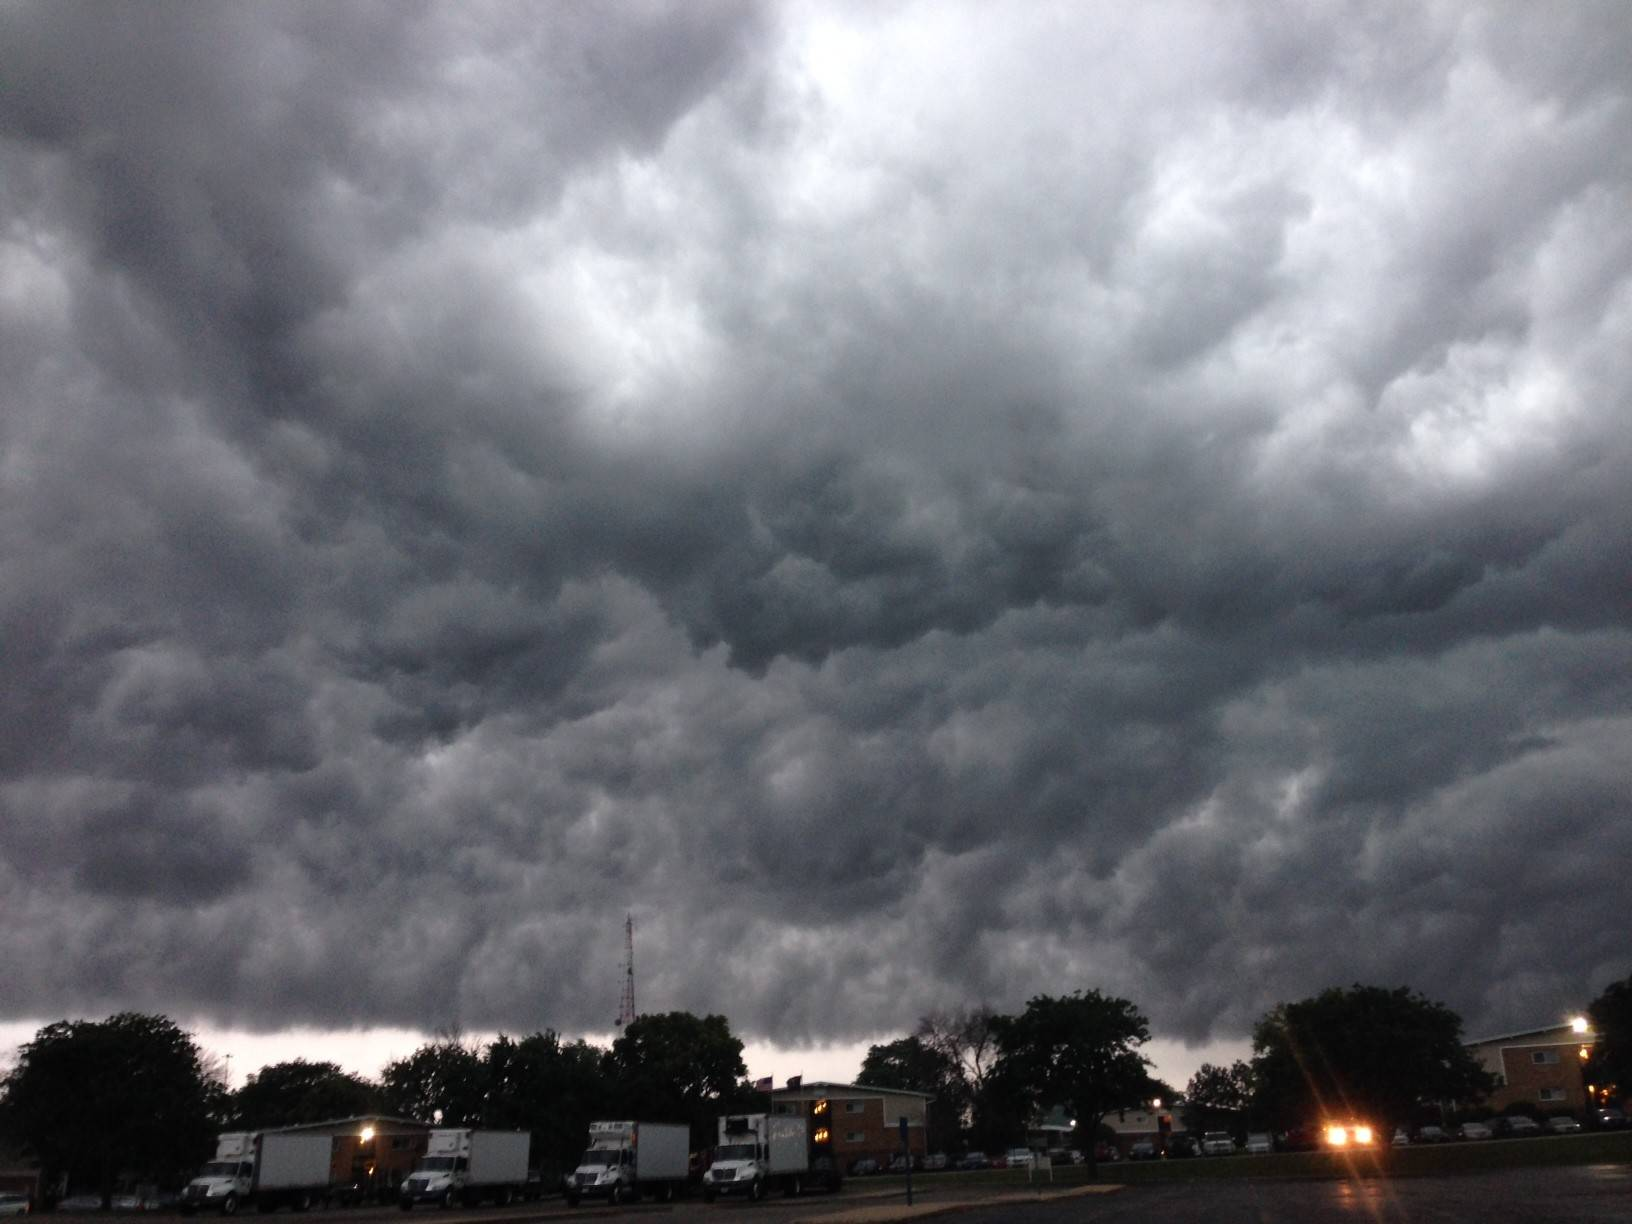 There's a chance of storms tonight, but it's not looking like it'll be as bad as this earlier this month in Palatine.